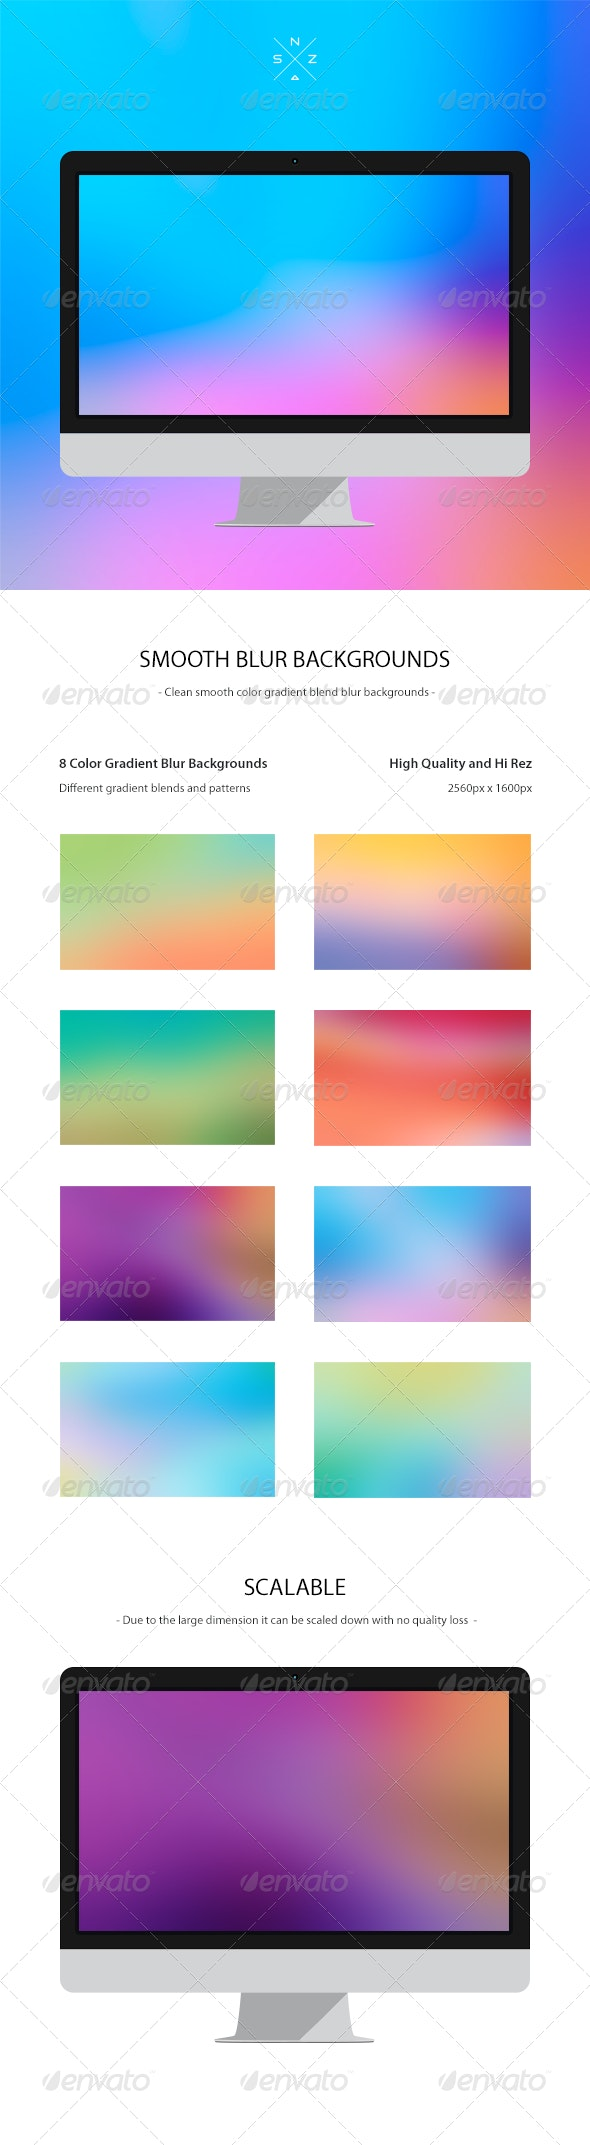 8 Color Gradient Blur Backgrounds - Abstract Backgrounds